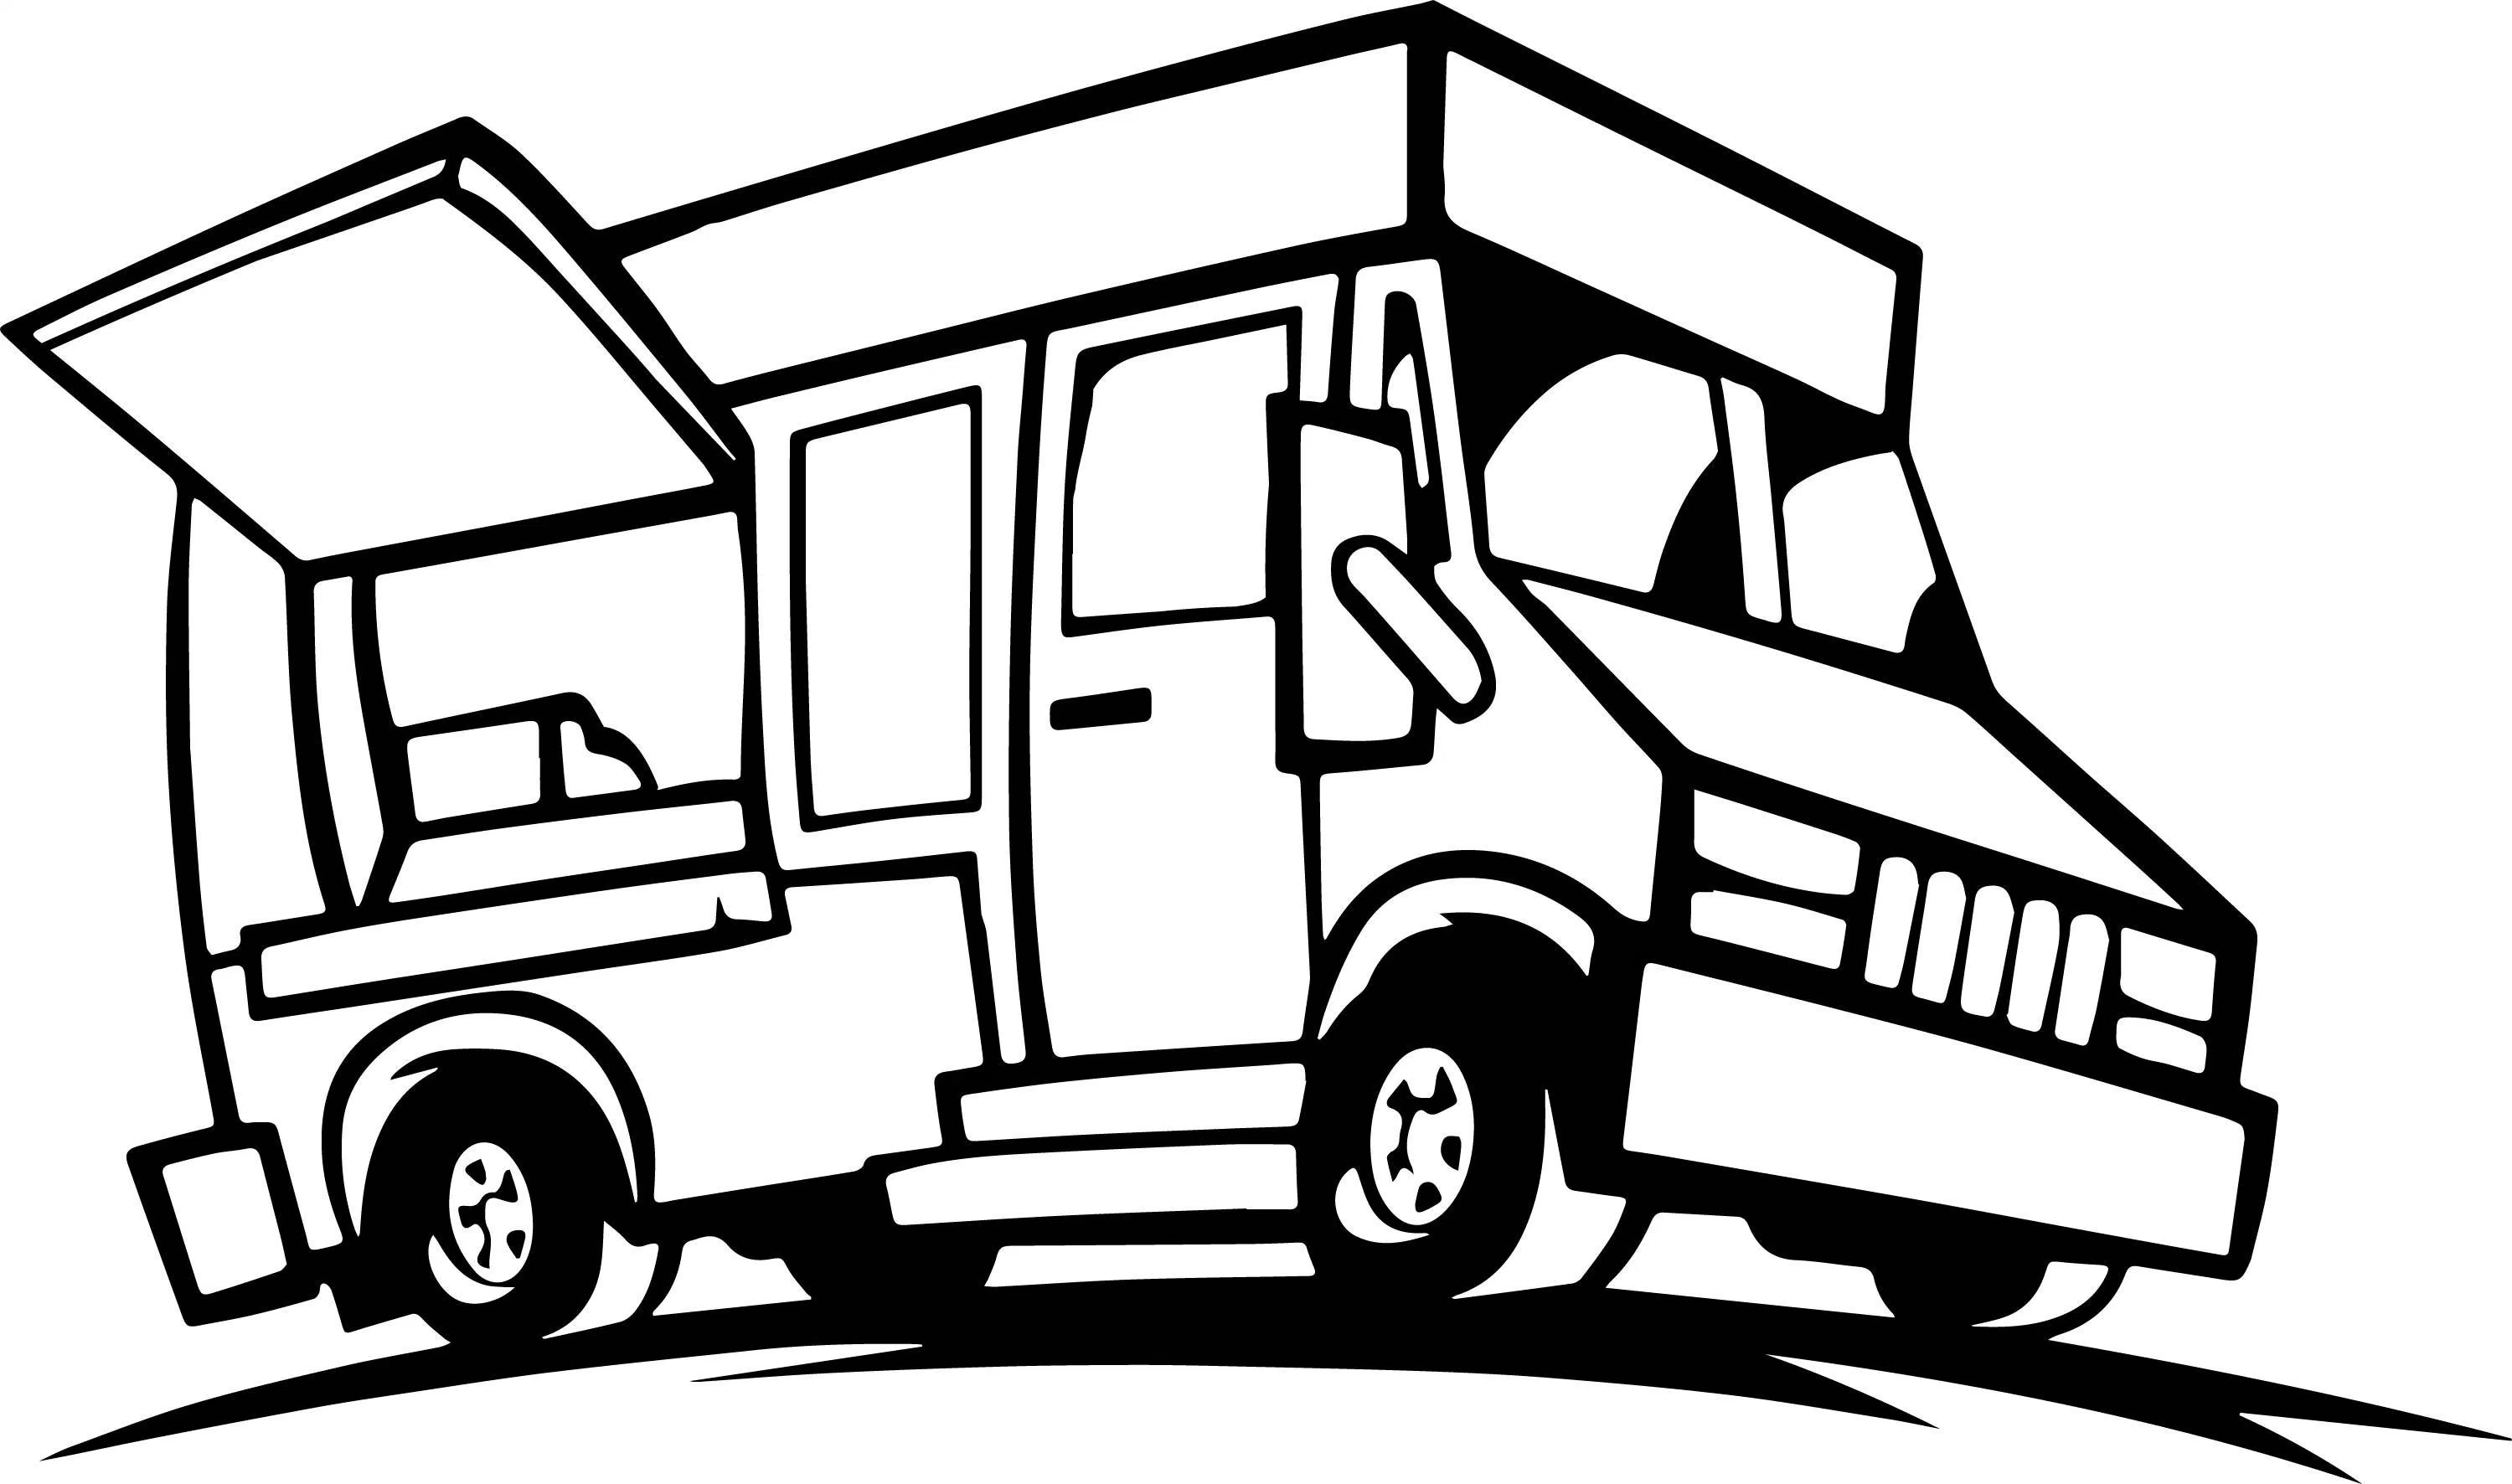 horse trailer coloring pages trailer truck coloring pages at getdrawings free download coloring pages trailer horse